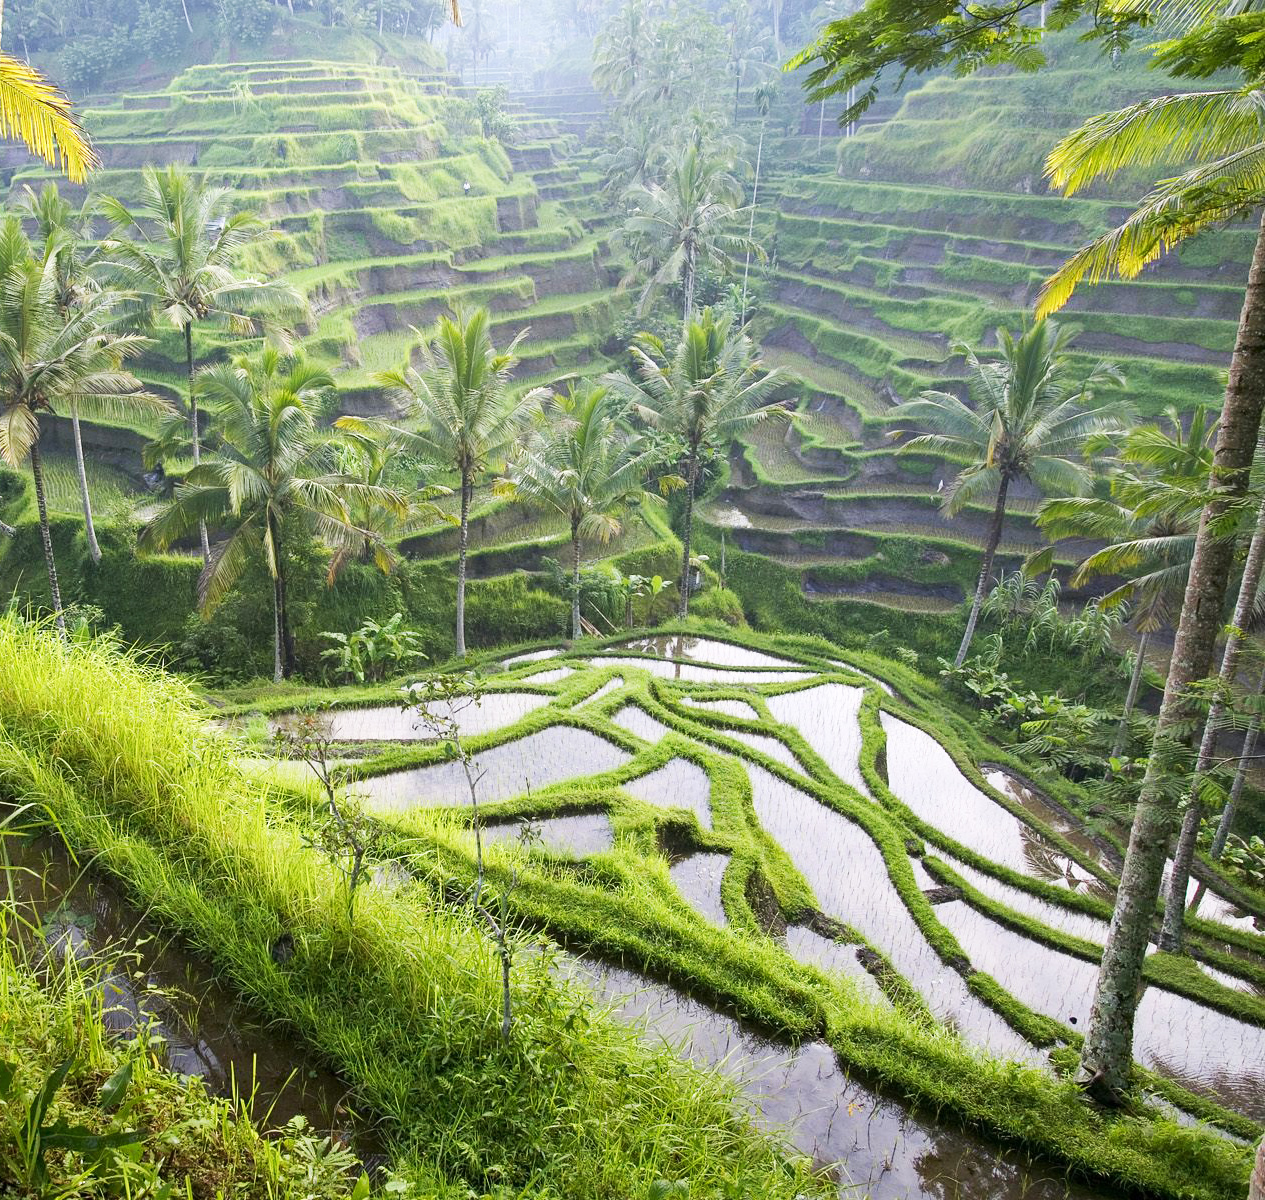 Terraced_Rice_Paddies_Ubud_Area_Bali_Indonesia[1].jpg